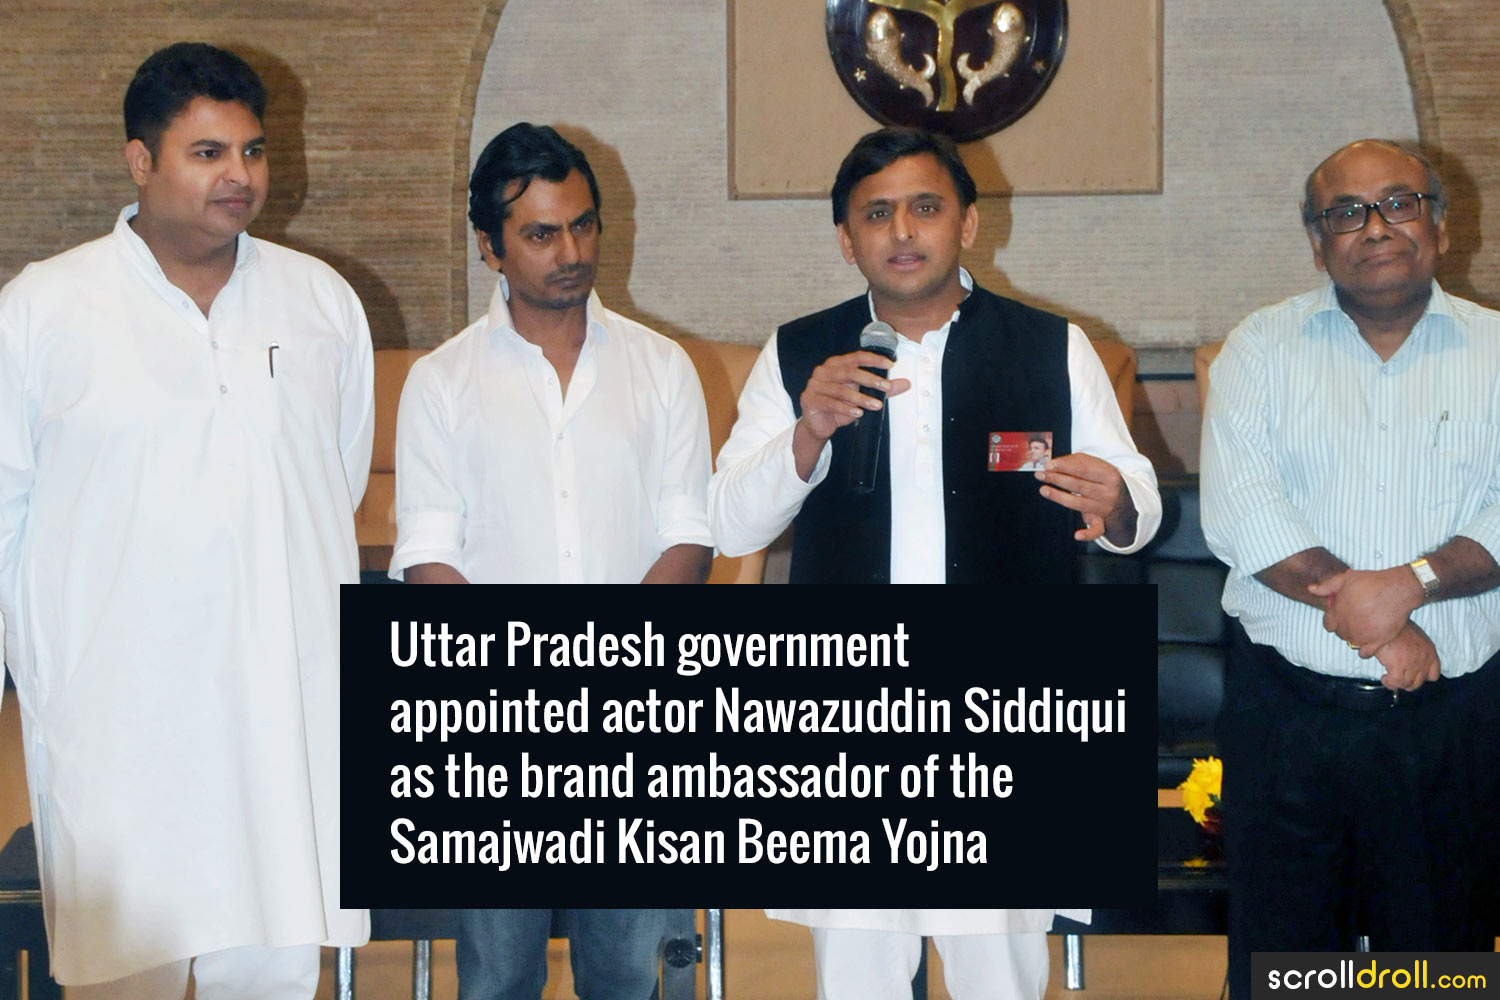 Facts about Nawazuddin Siddique-Uttar Pradesh government actor Nawazuddin Siddiqui as the brand ambassador of the Samajwadi Kiasn Beema Yojna